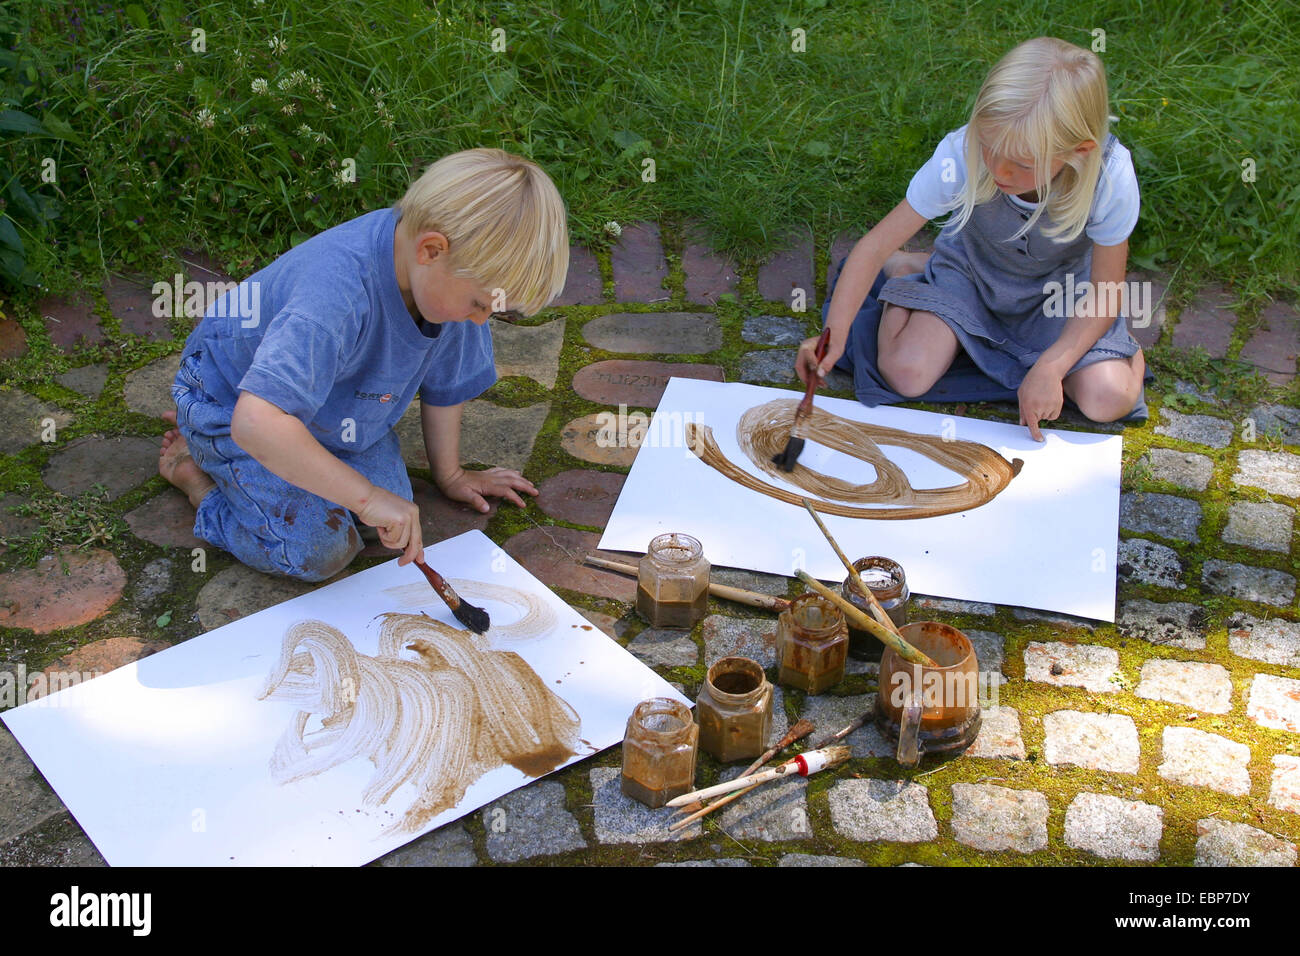 two children painting with earth colour, Germany - Stock Image